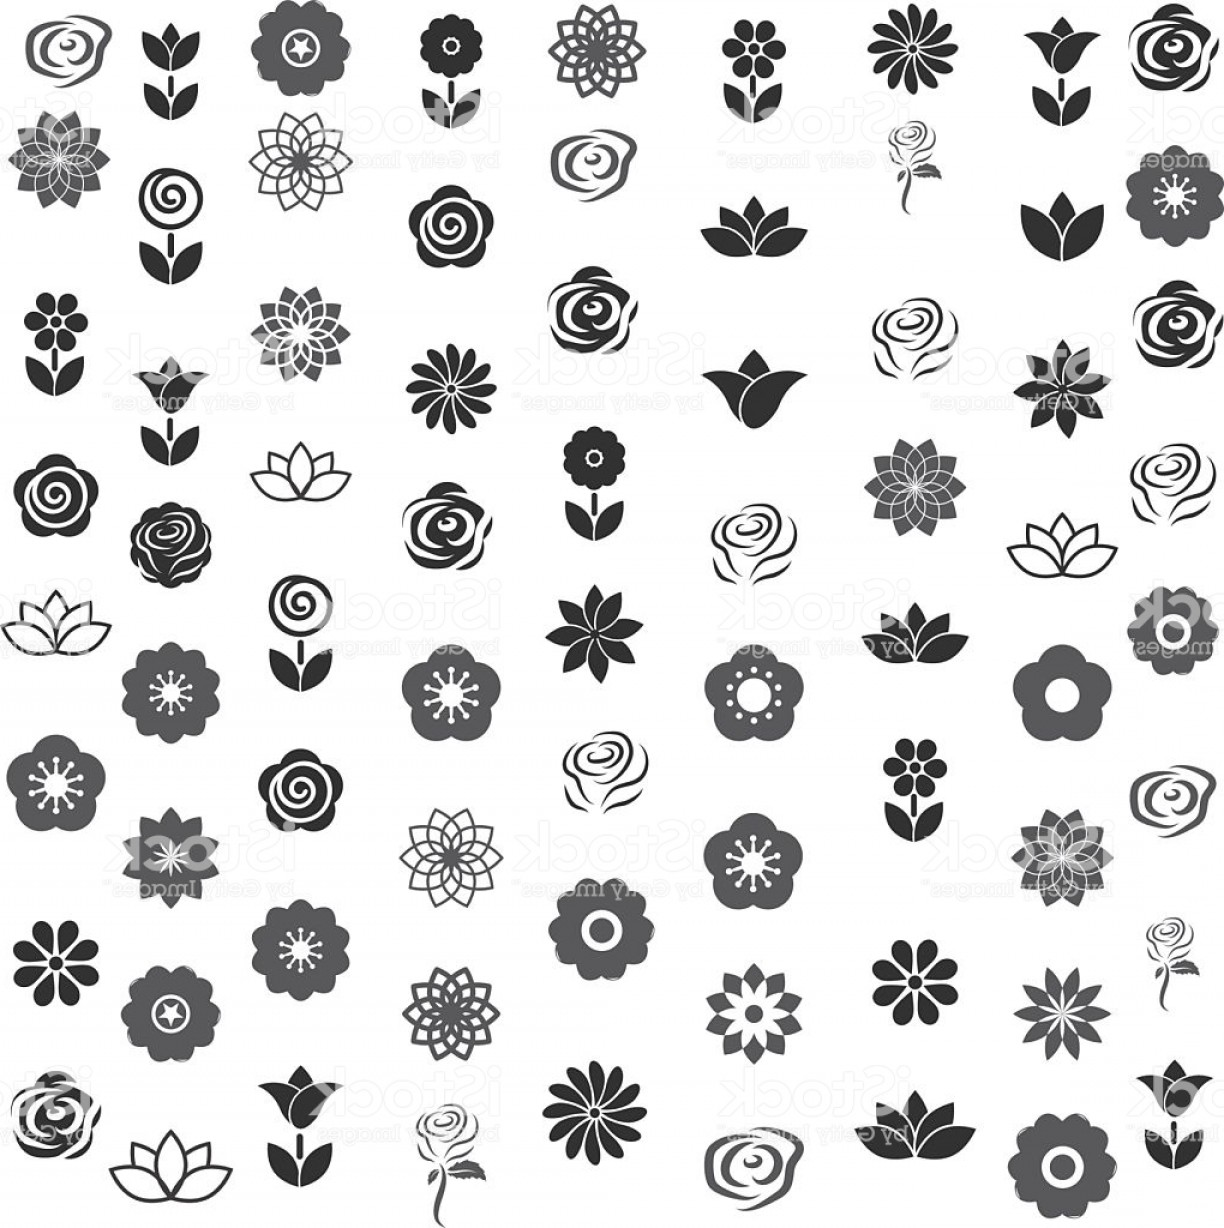 Icon Of Flower Vectors: Flower Icon Flower Pattern Seamless Vector Illustrator Gm